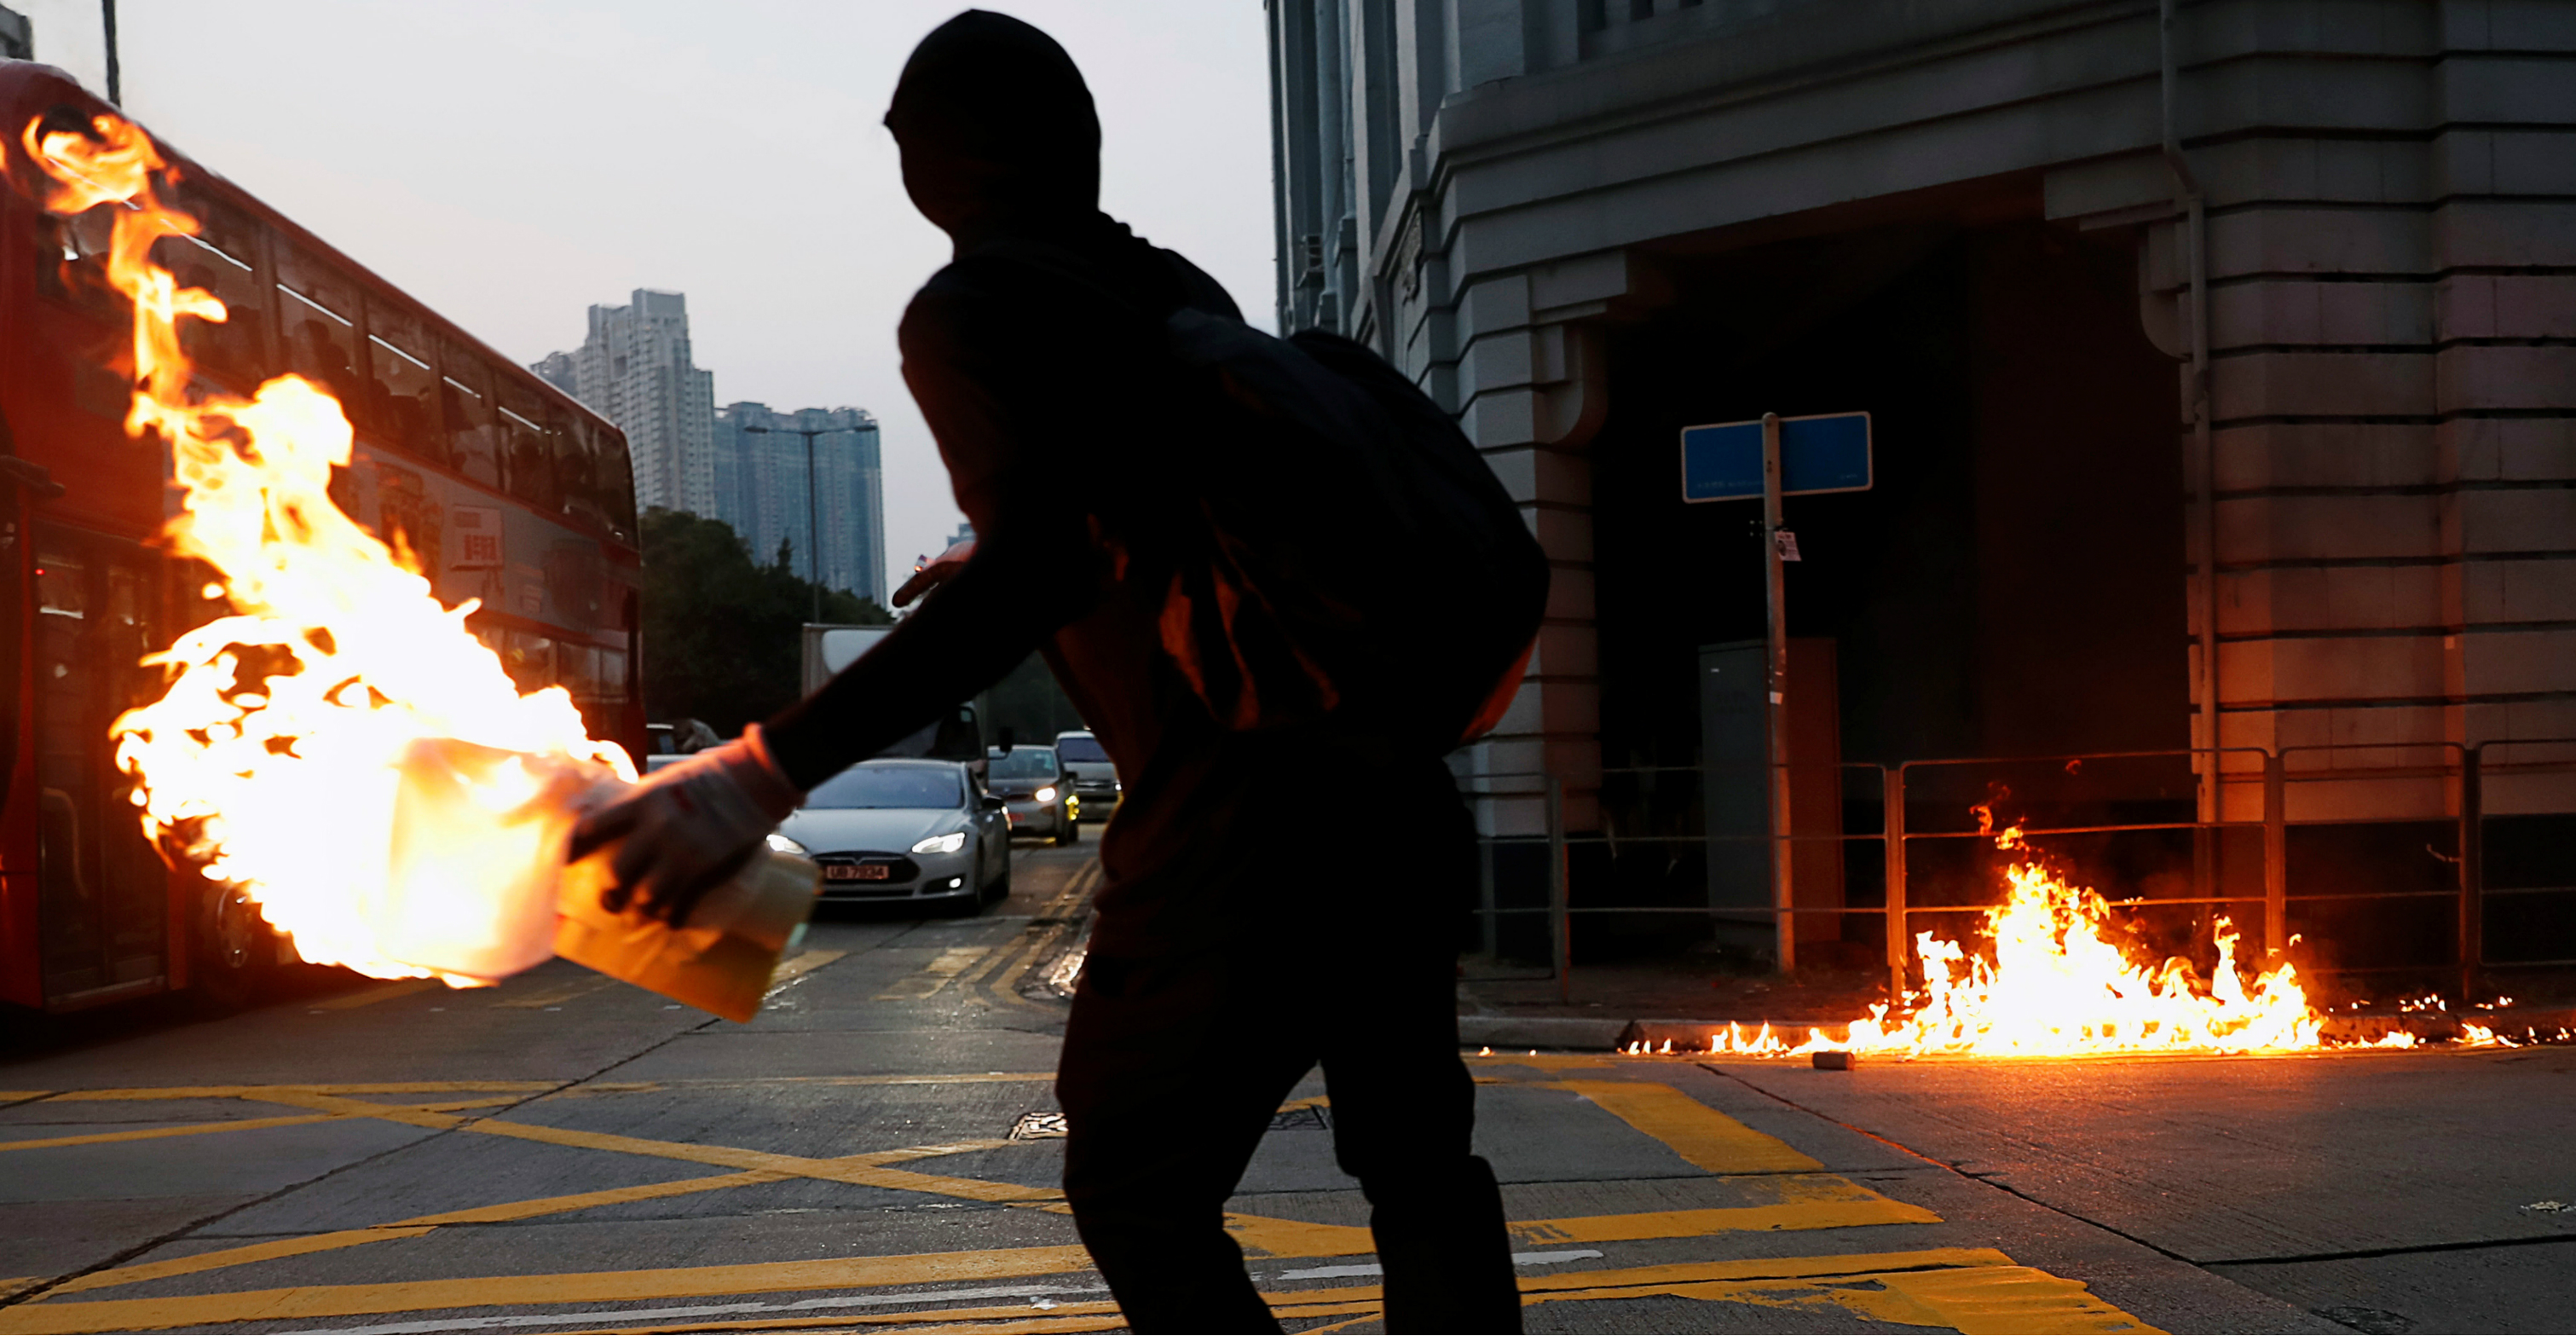 A black-clad protester hurls a petrol bomb at a police station in Sham Shui Po on Oct. 20. Photo: Reuters